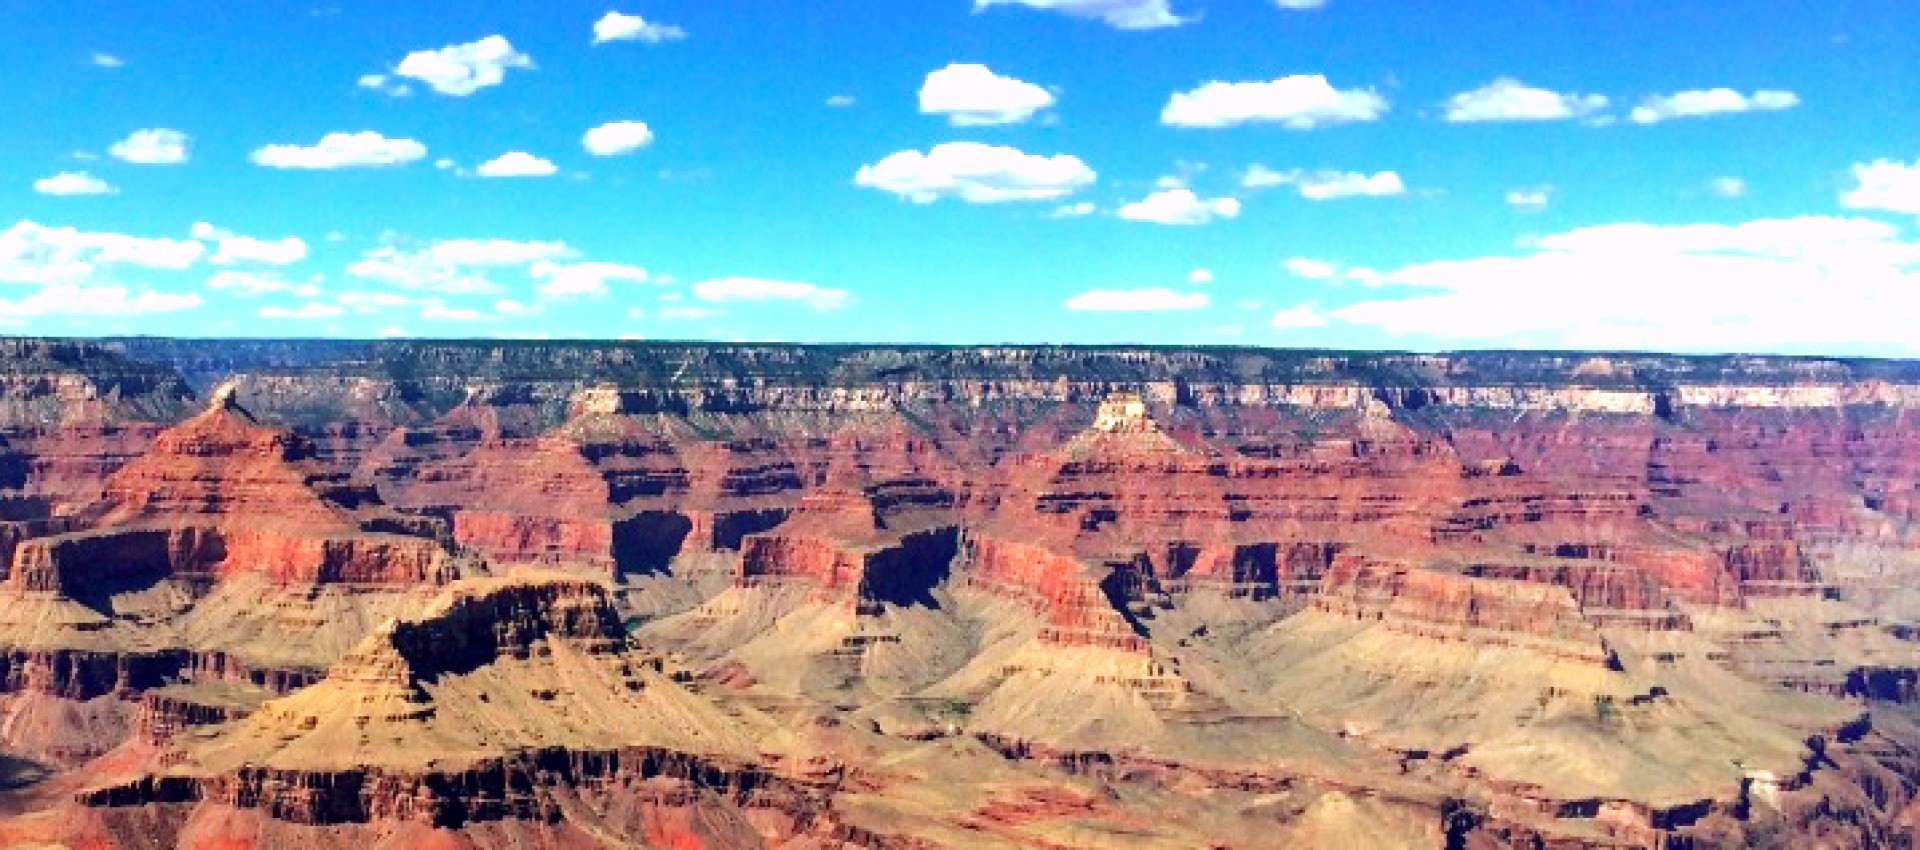 Grand Canyon – South Rim – Bate-volta de Las Vegas